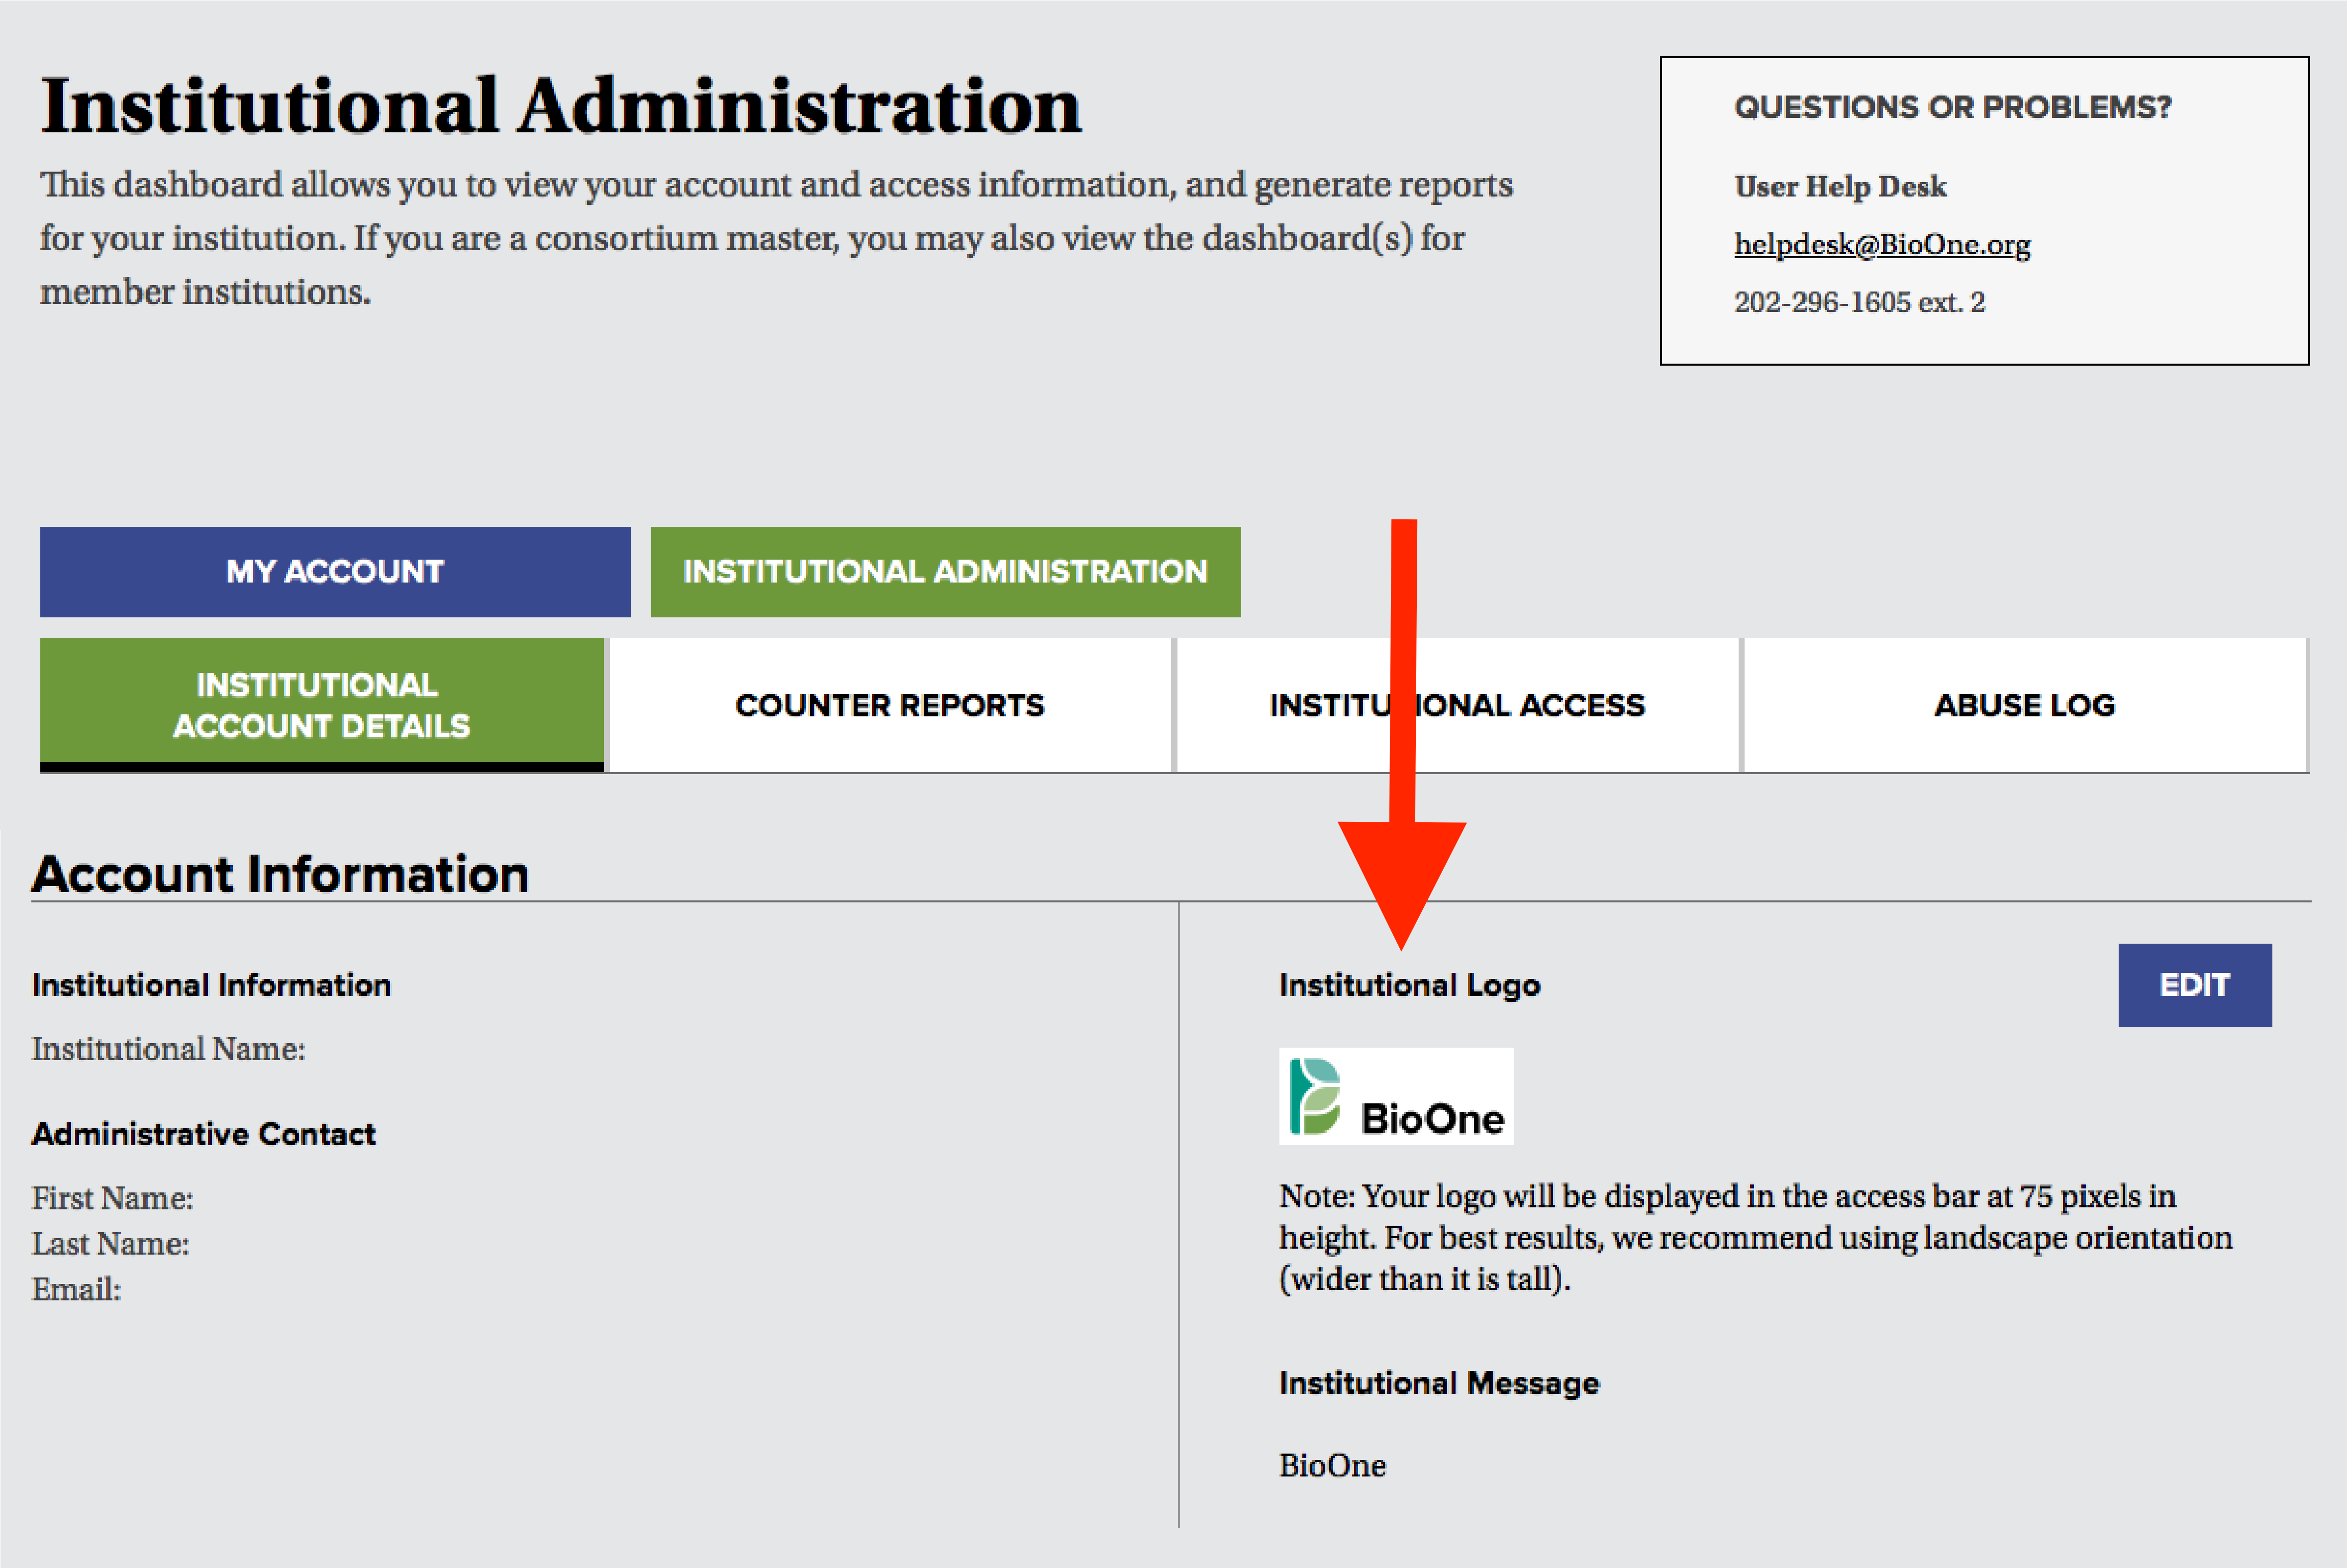 A screenshot of the institutional administration dashboard, with a red arrow pointing to the Institutional Logo section.